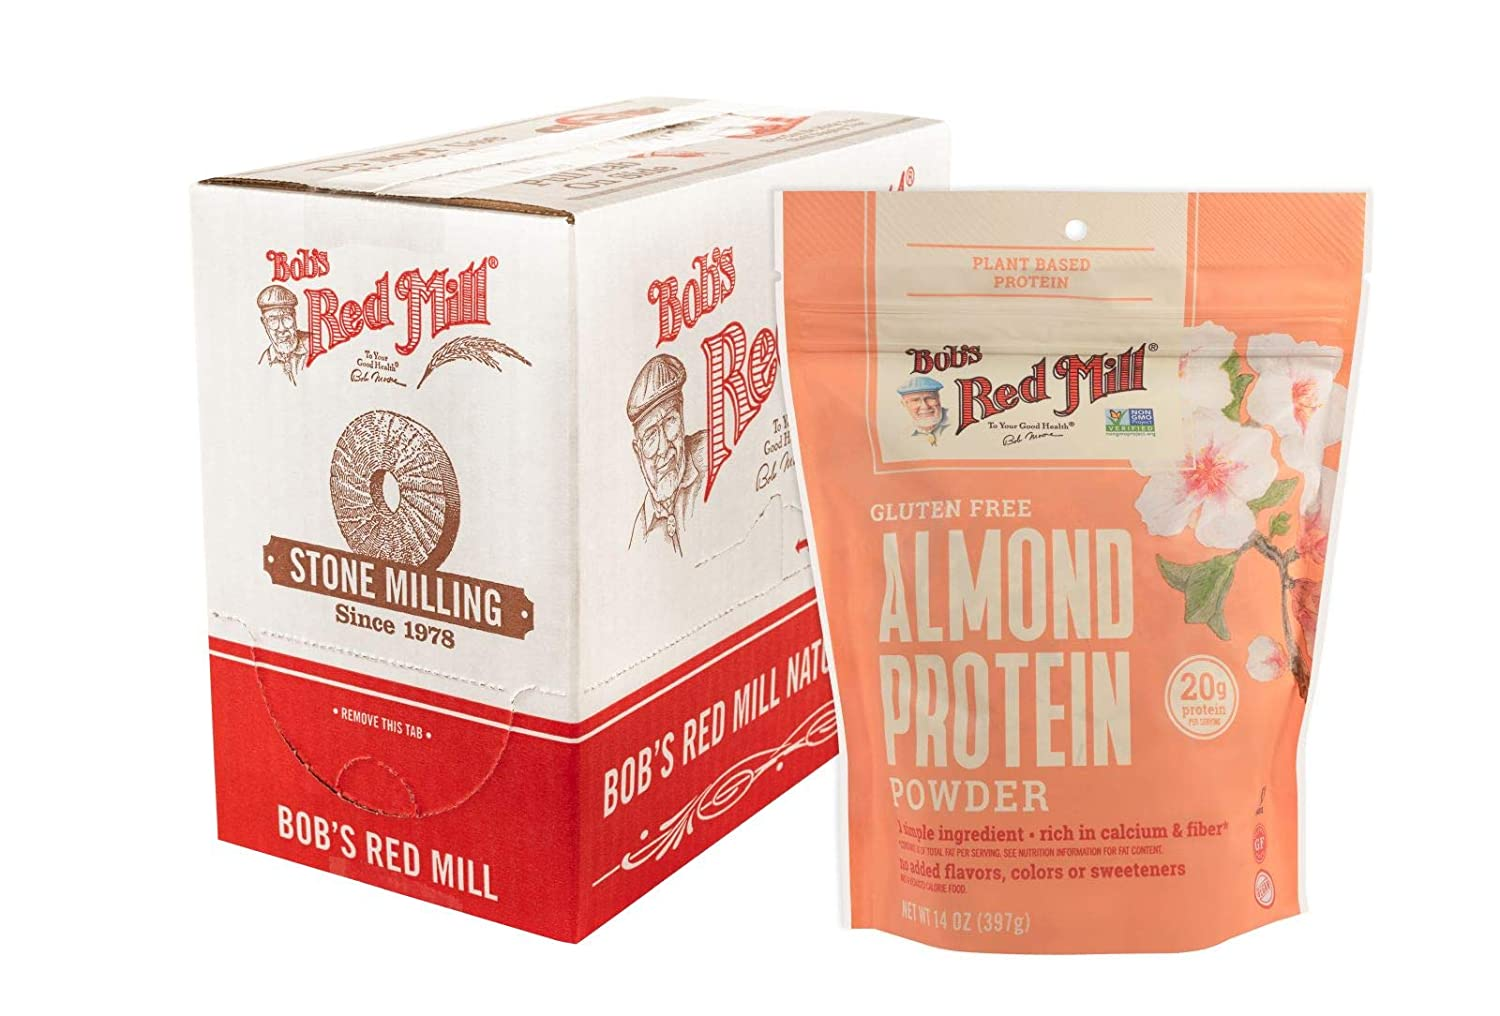 Bob's Red Mill Almond Protein 14-ounce 2021 spring and summer new 4 of Brand new Pack Powder